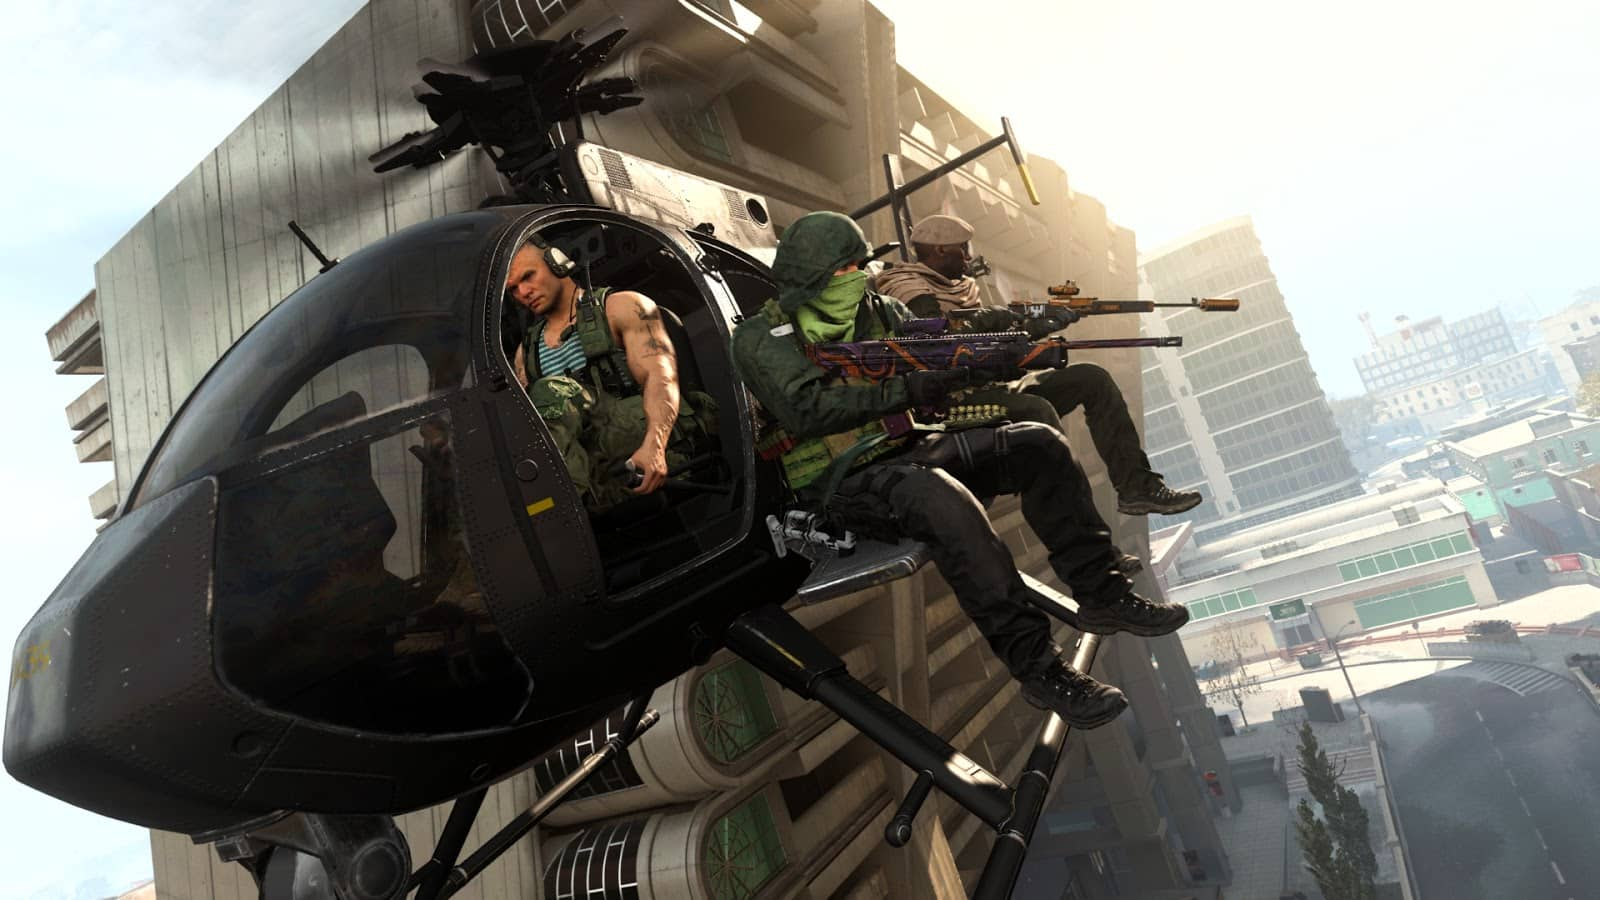 cod:-helicopters-removed-from-warzone-due-to-invisibility-glitch